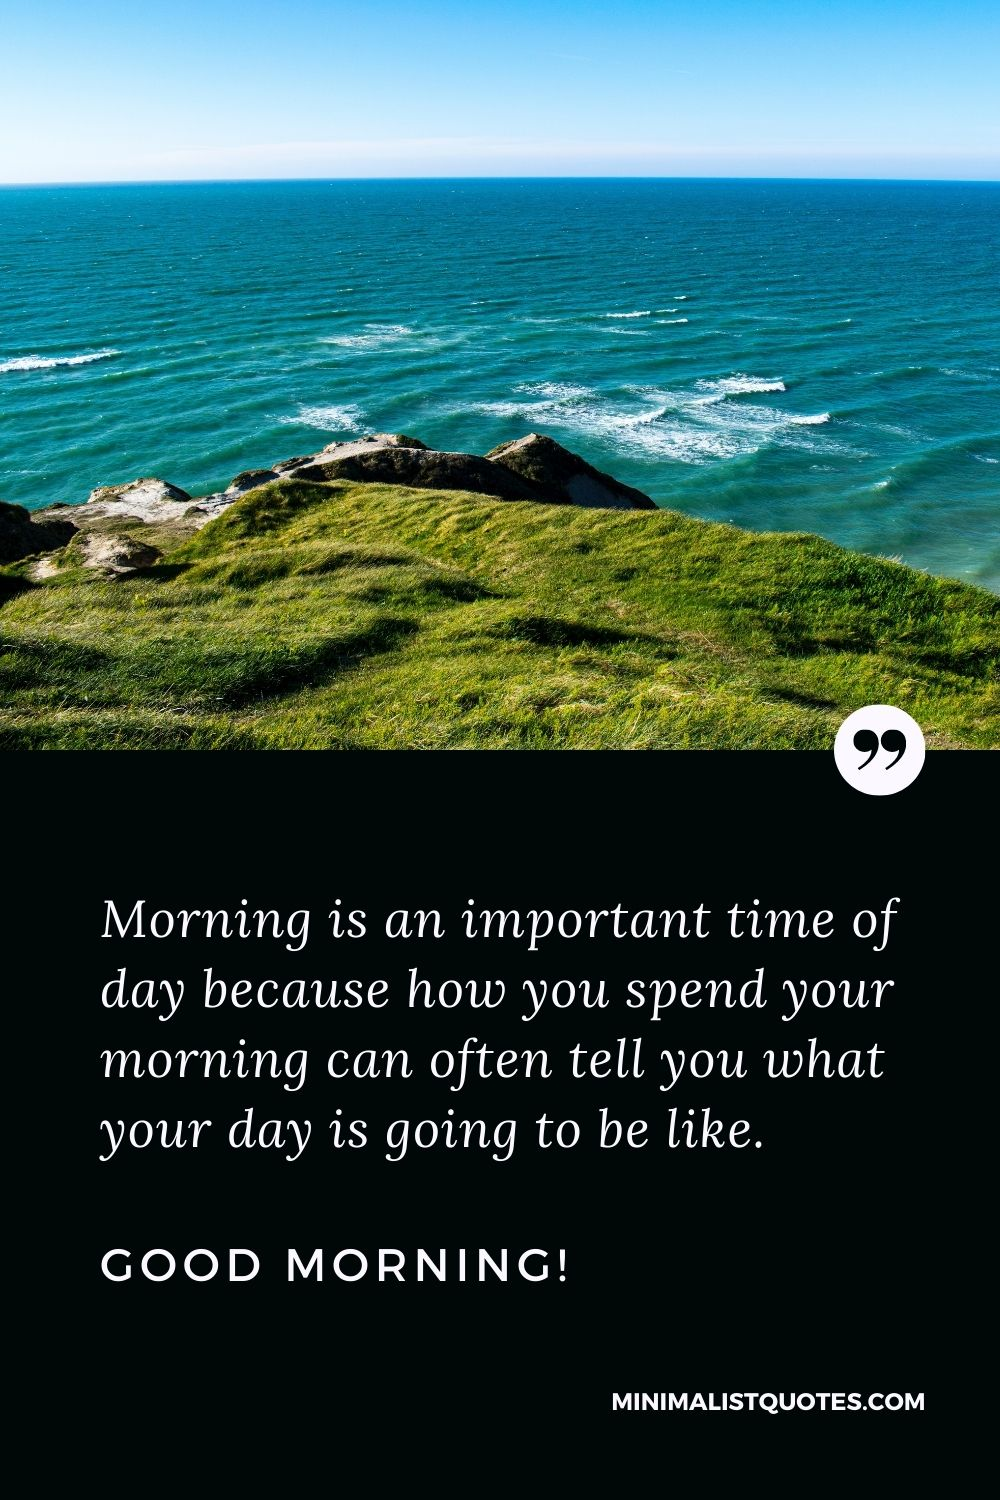 Good Morning Quote, Wish & Message With Image: Morning is an important time of day because how you spend your morning can often tell you what your day is going to be like. Good Morning!